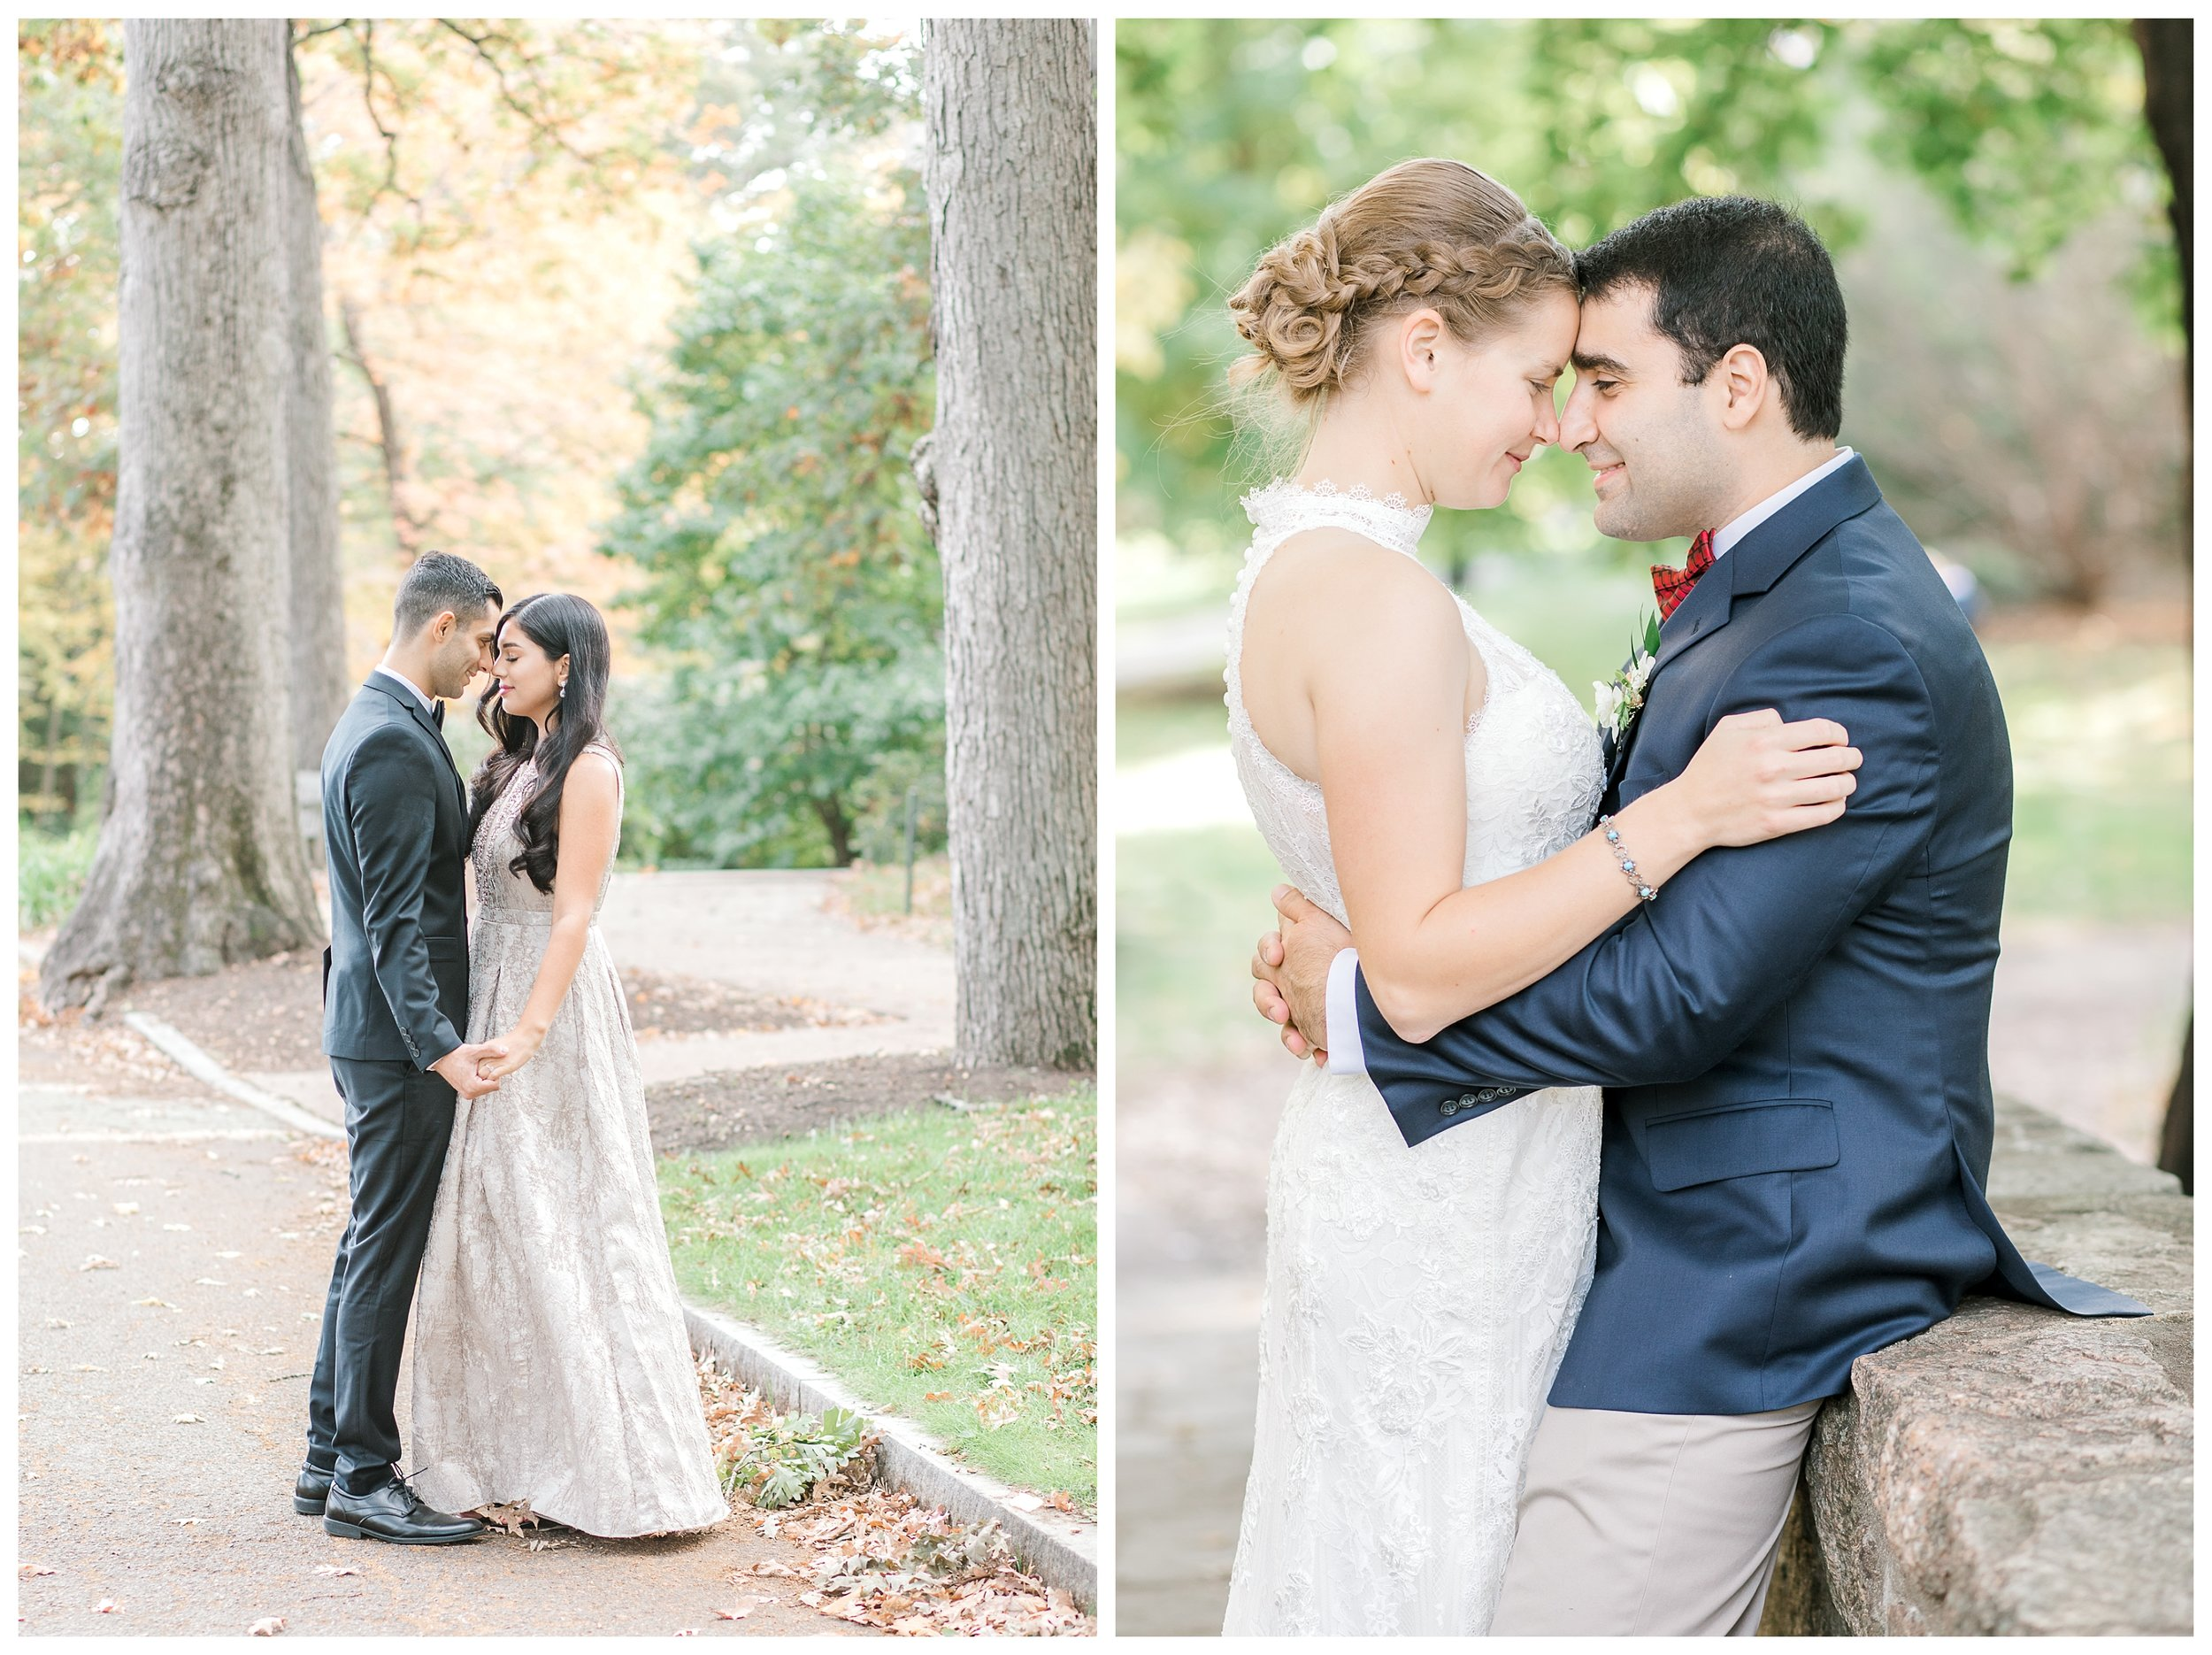 wellesley_college_fall_wedding_photos_erica_pezente_photography.jpg